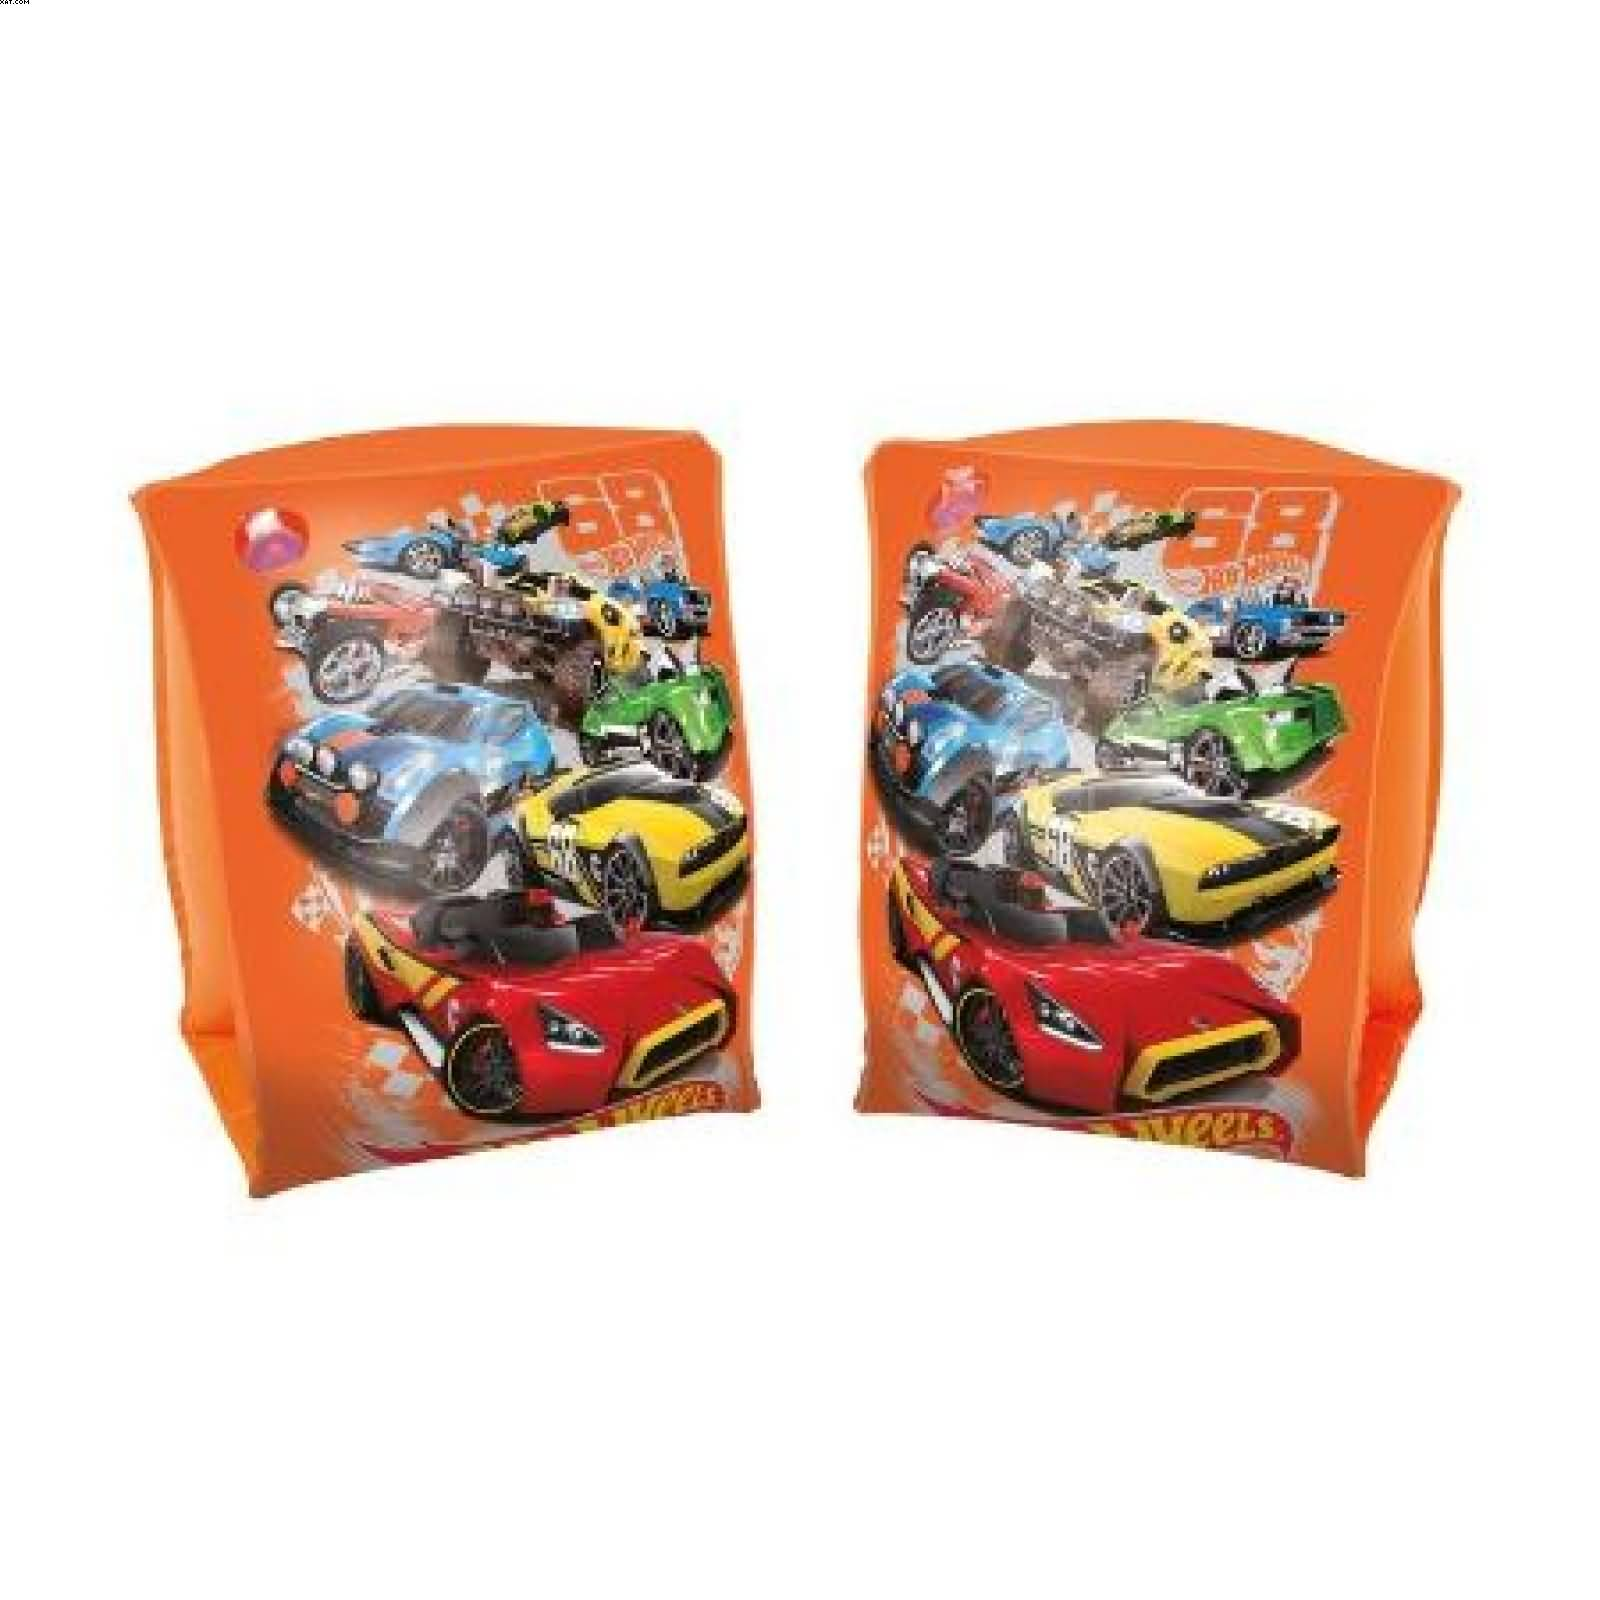 Bestway Bracitos Inflables Hot Wheels 23cm x 15cm